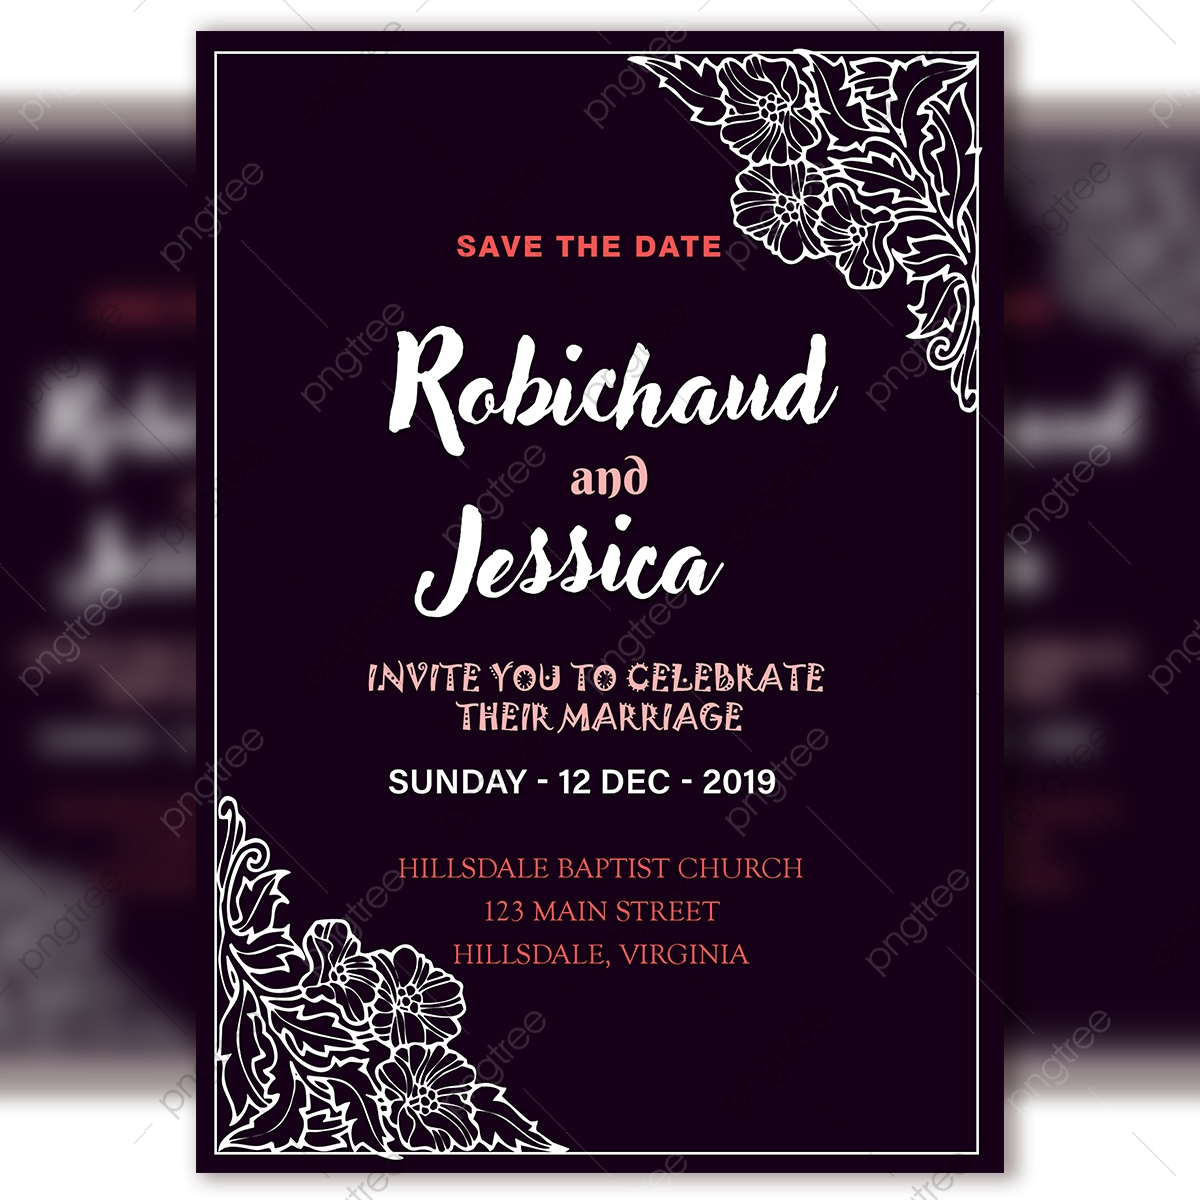 Vintage Wedding Invitation Card Template Psd File With Royal Frame Template  for Free Download on Pngtree